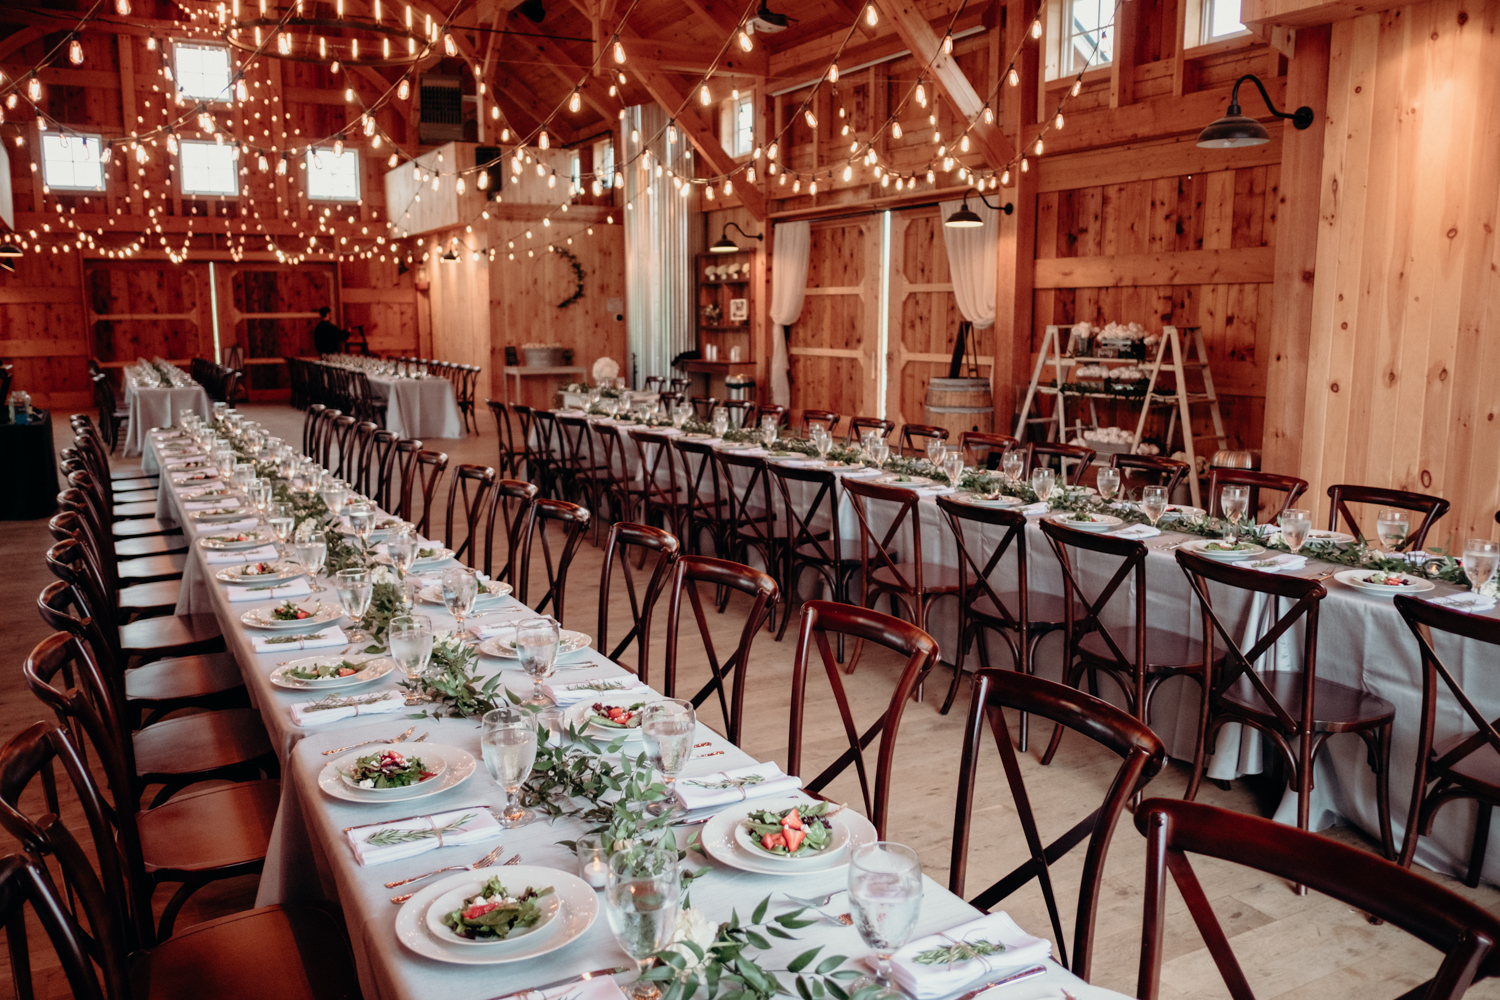 zion springs reception barn dinner setup for loudoun county wedding venue